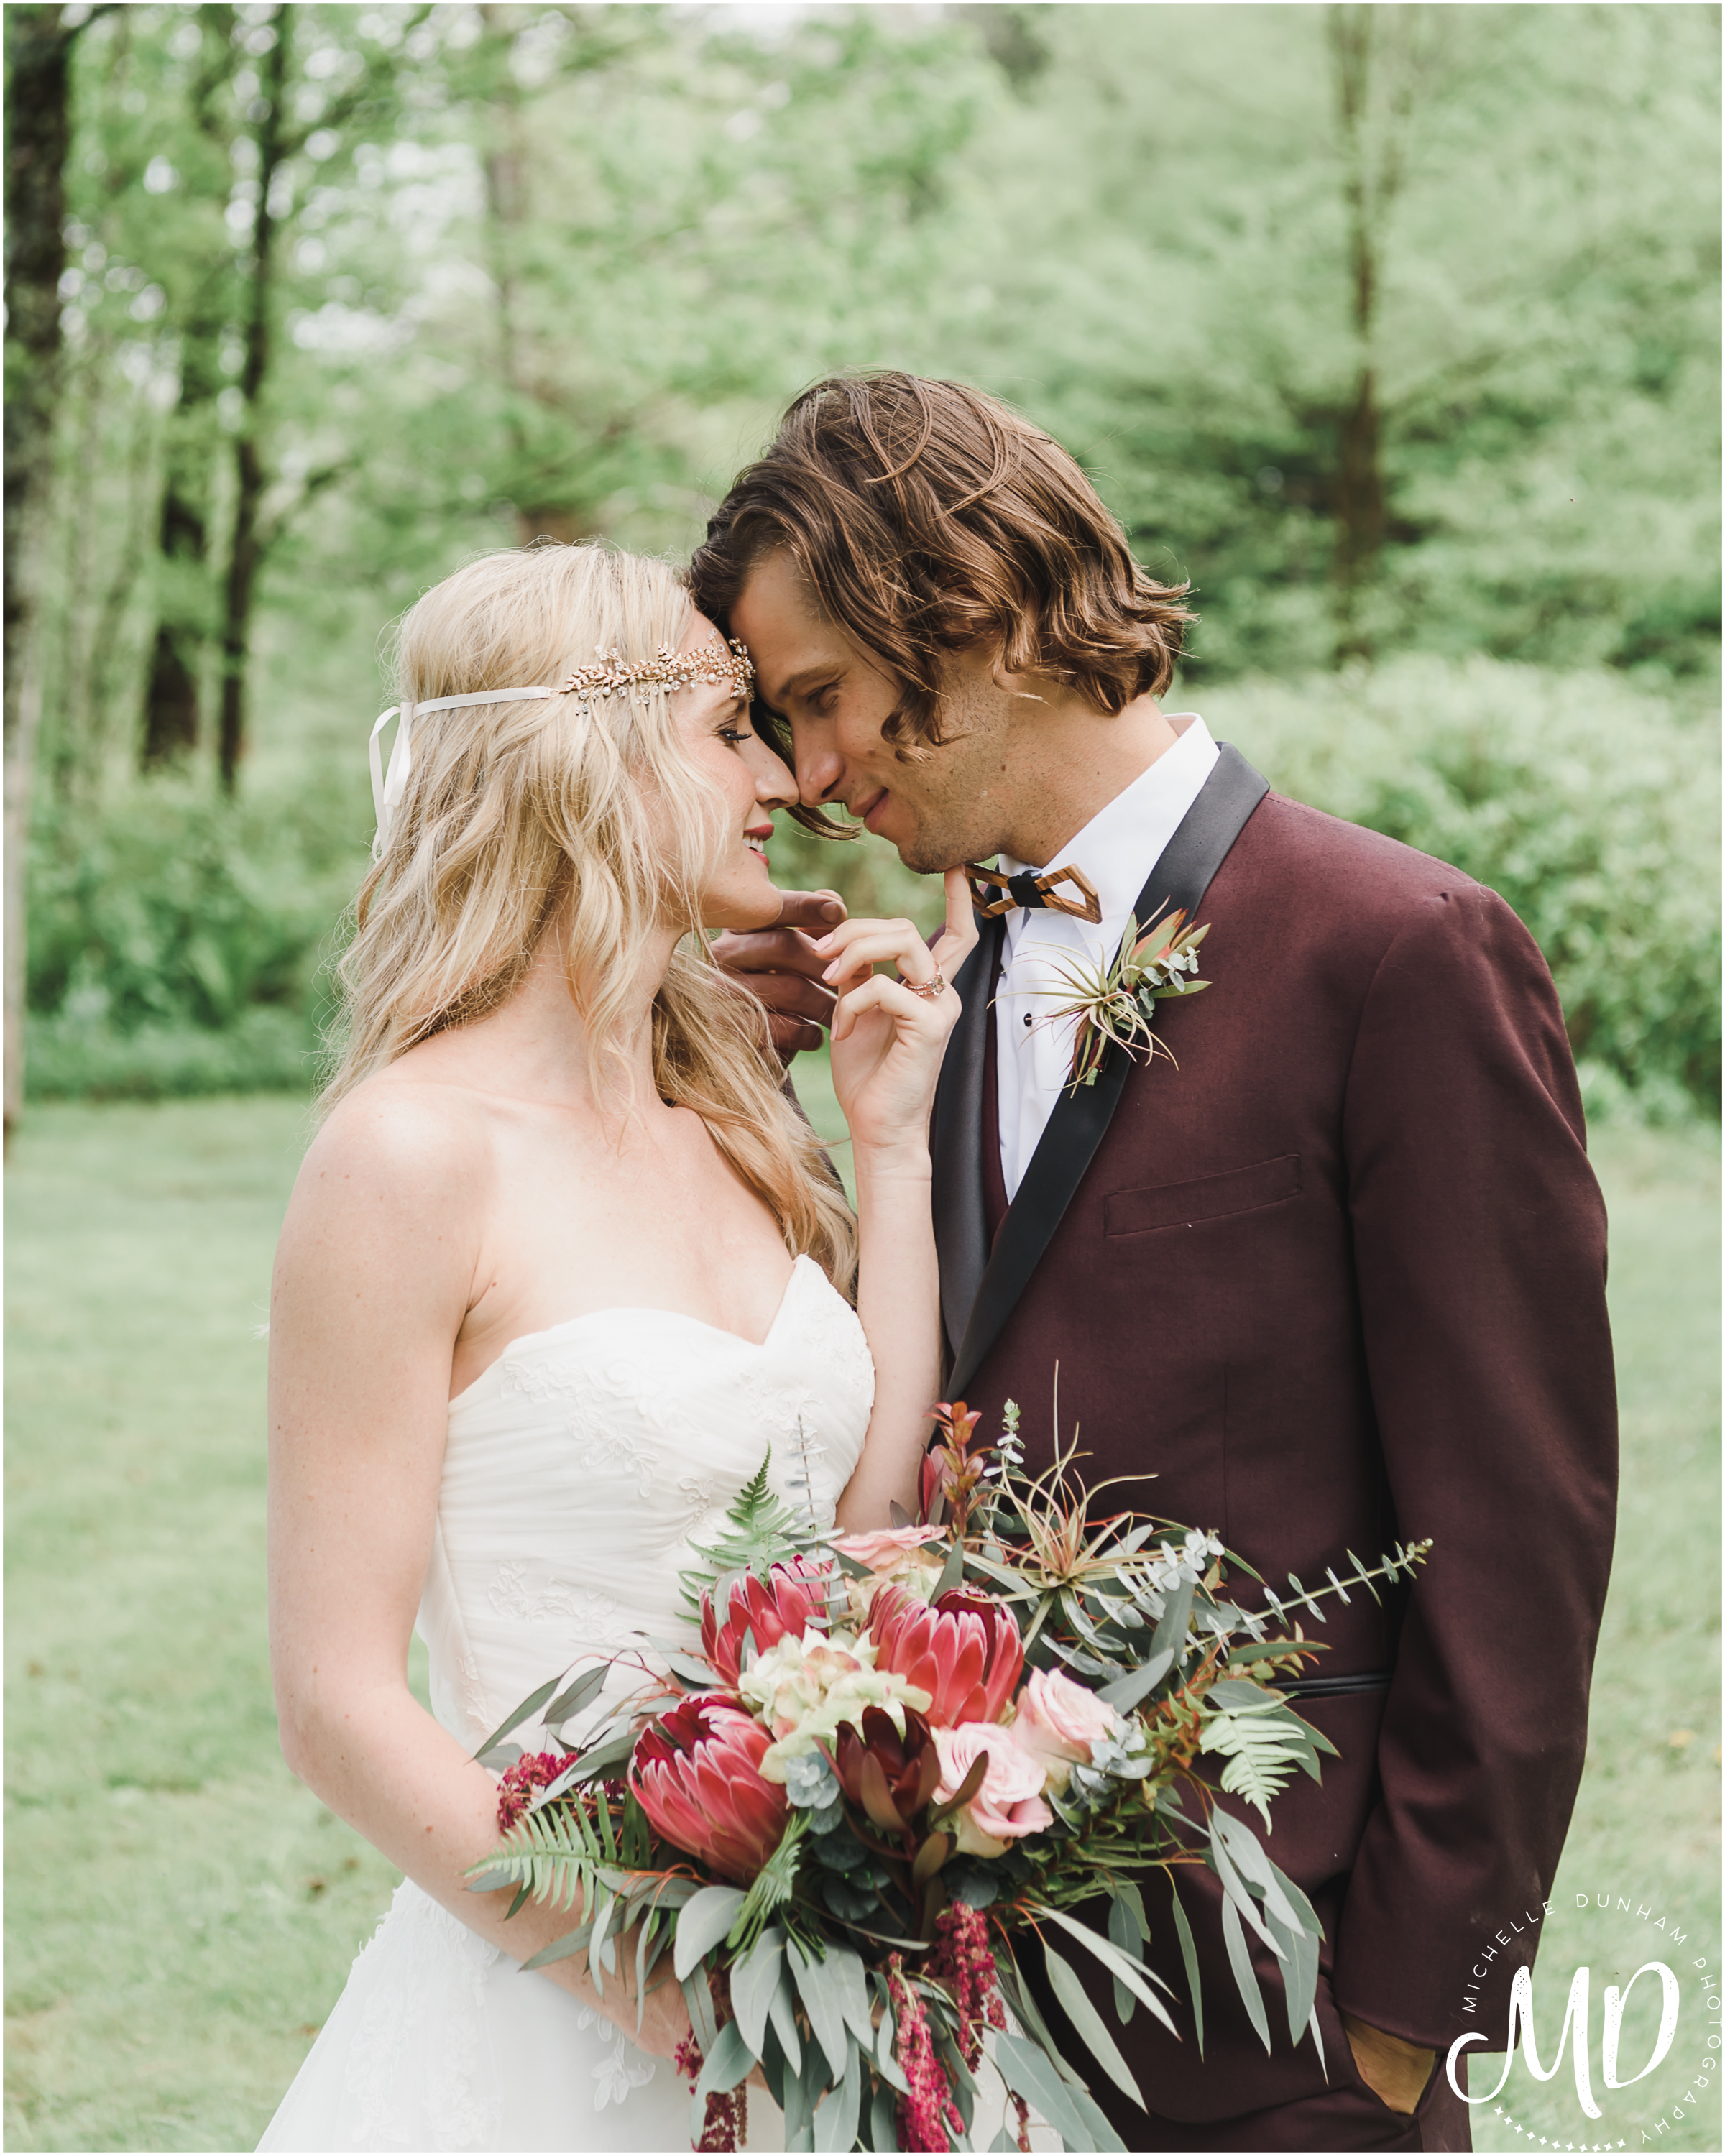 Michelle Dunham Photography_Boho_BrideandGroom_1.jpg